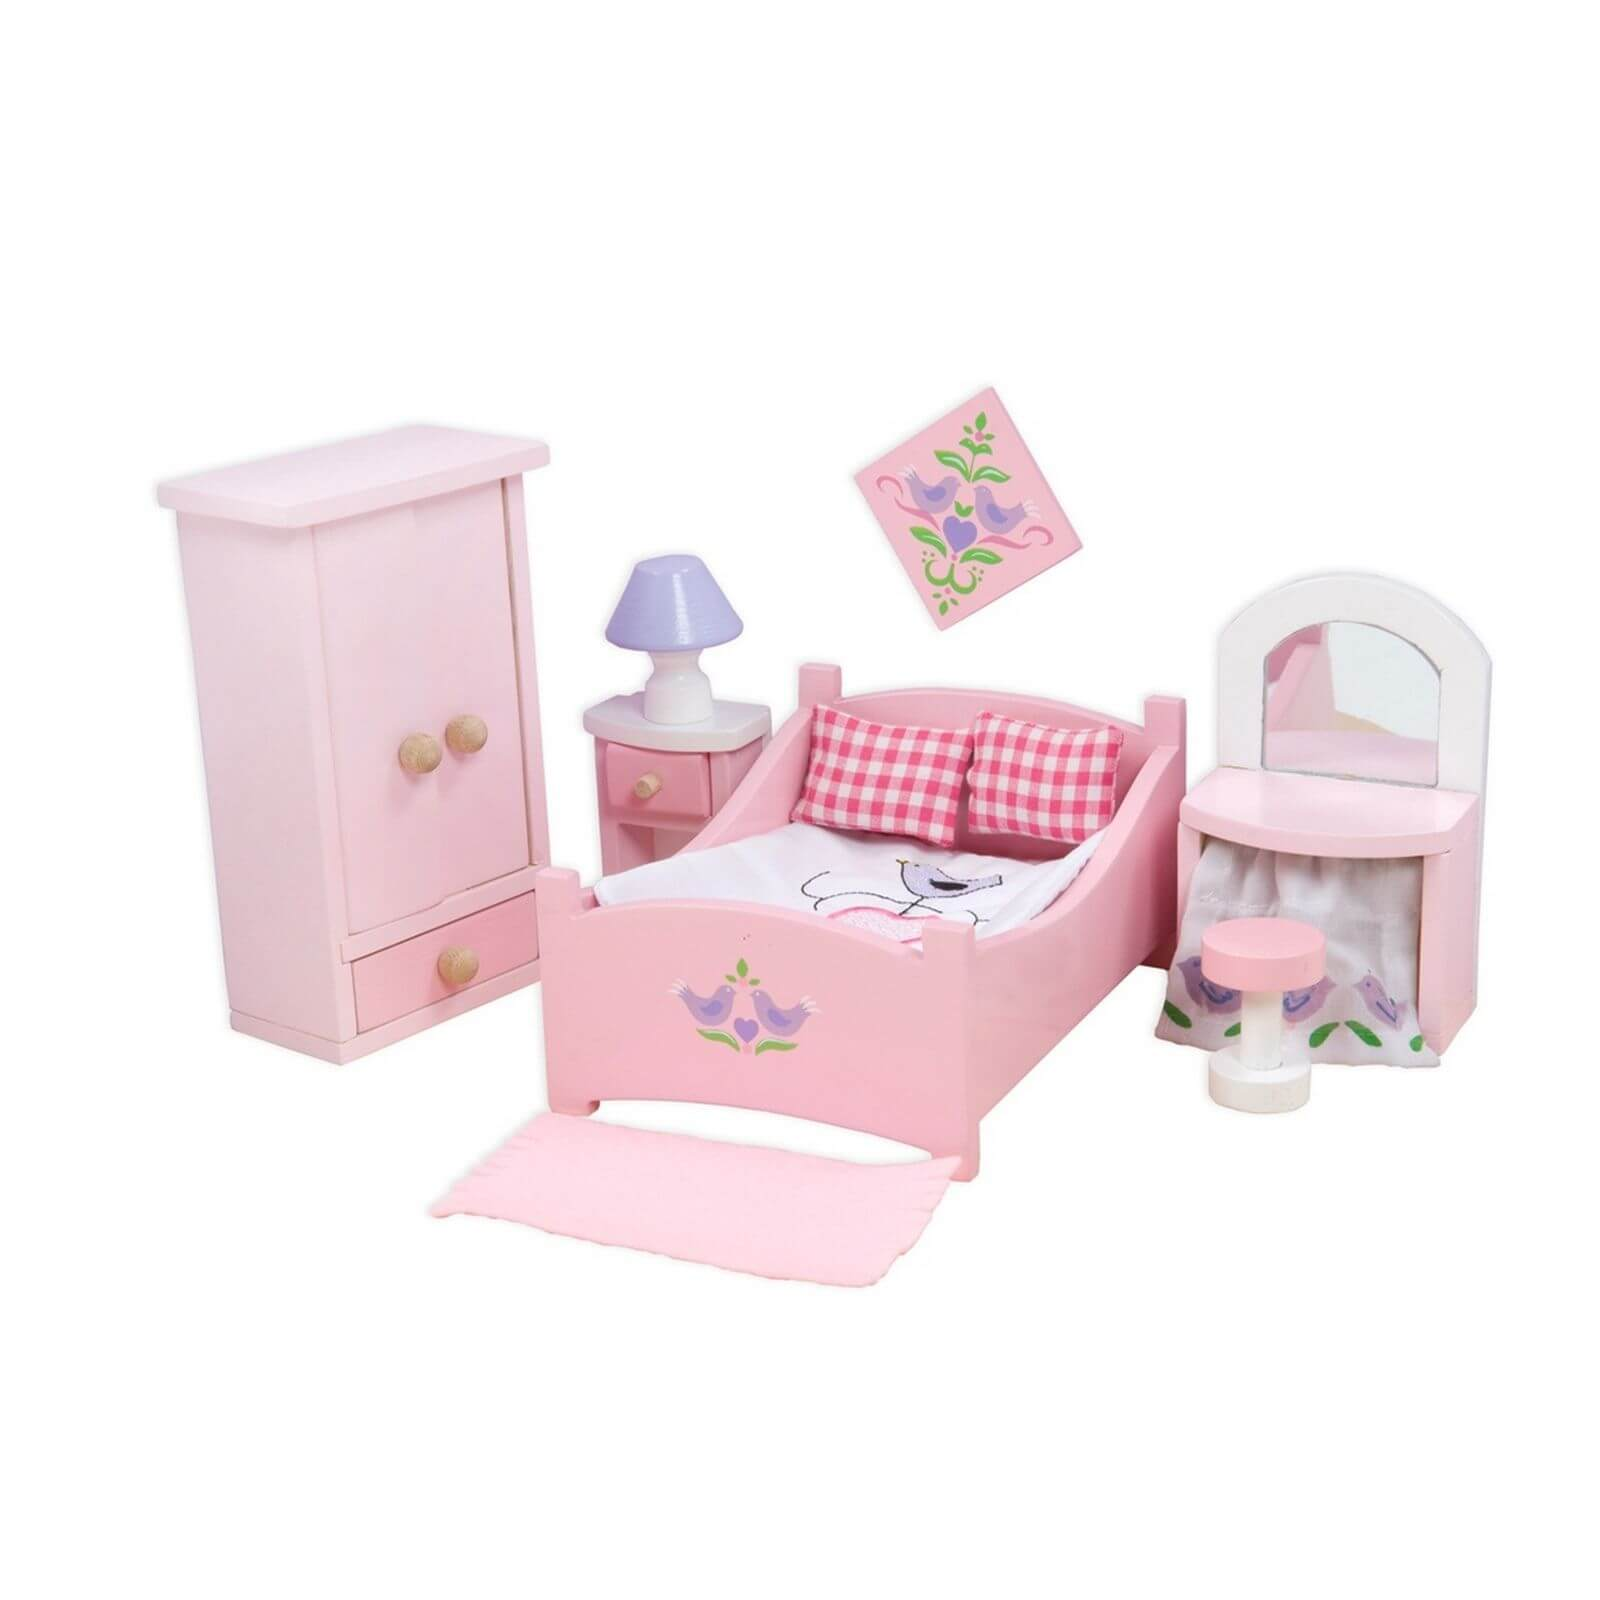 Le toy van sugar plum bedroom wooden dolls house furniture jadrem toys Dolls wooden furniture